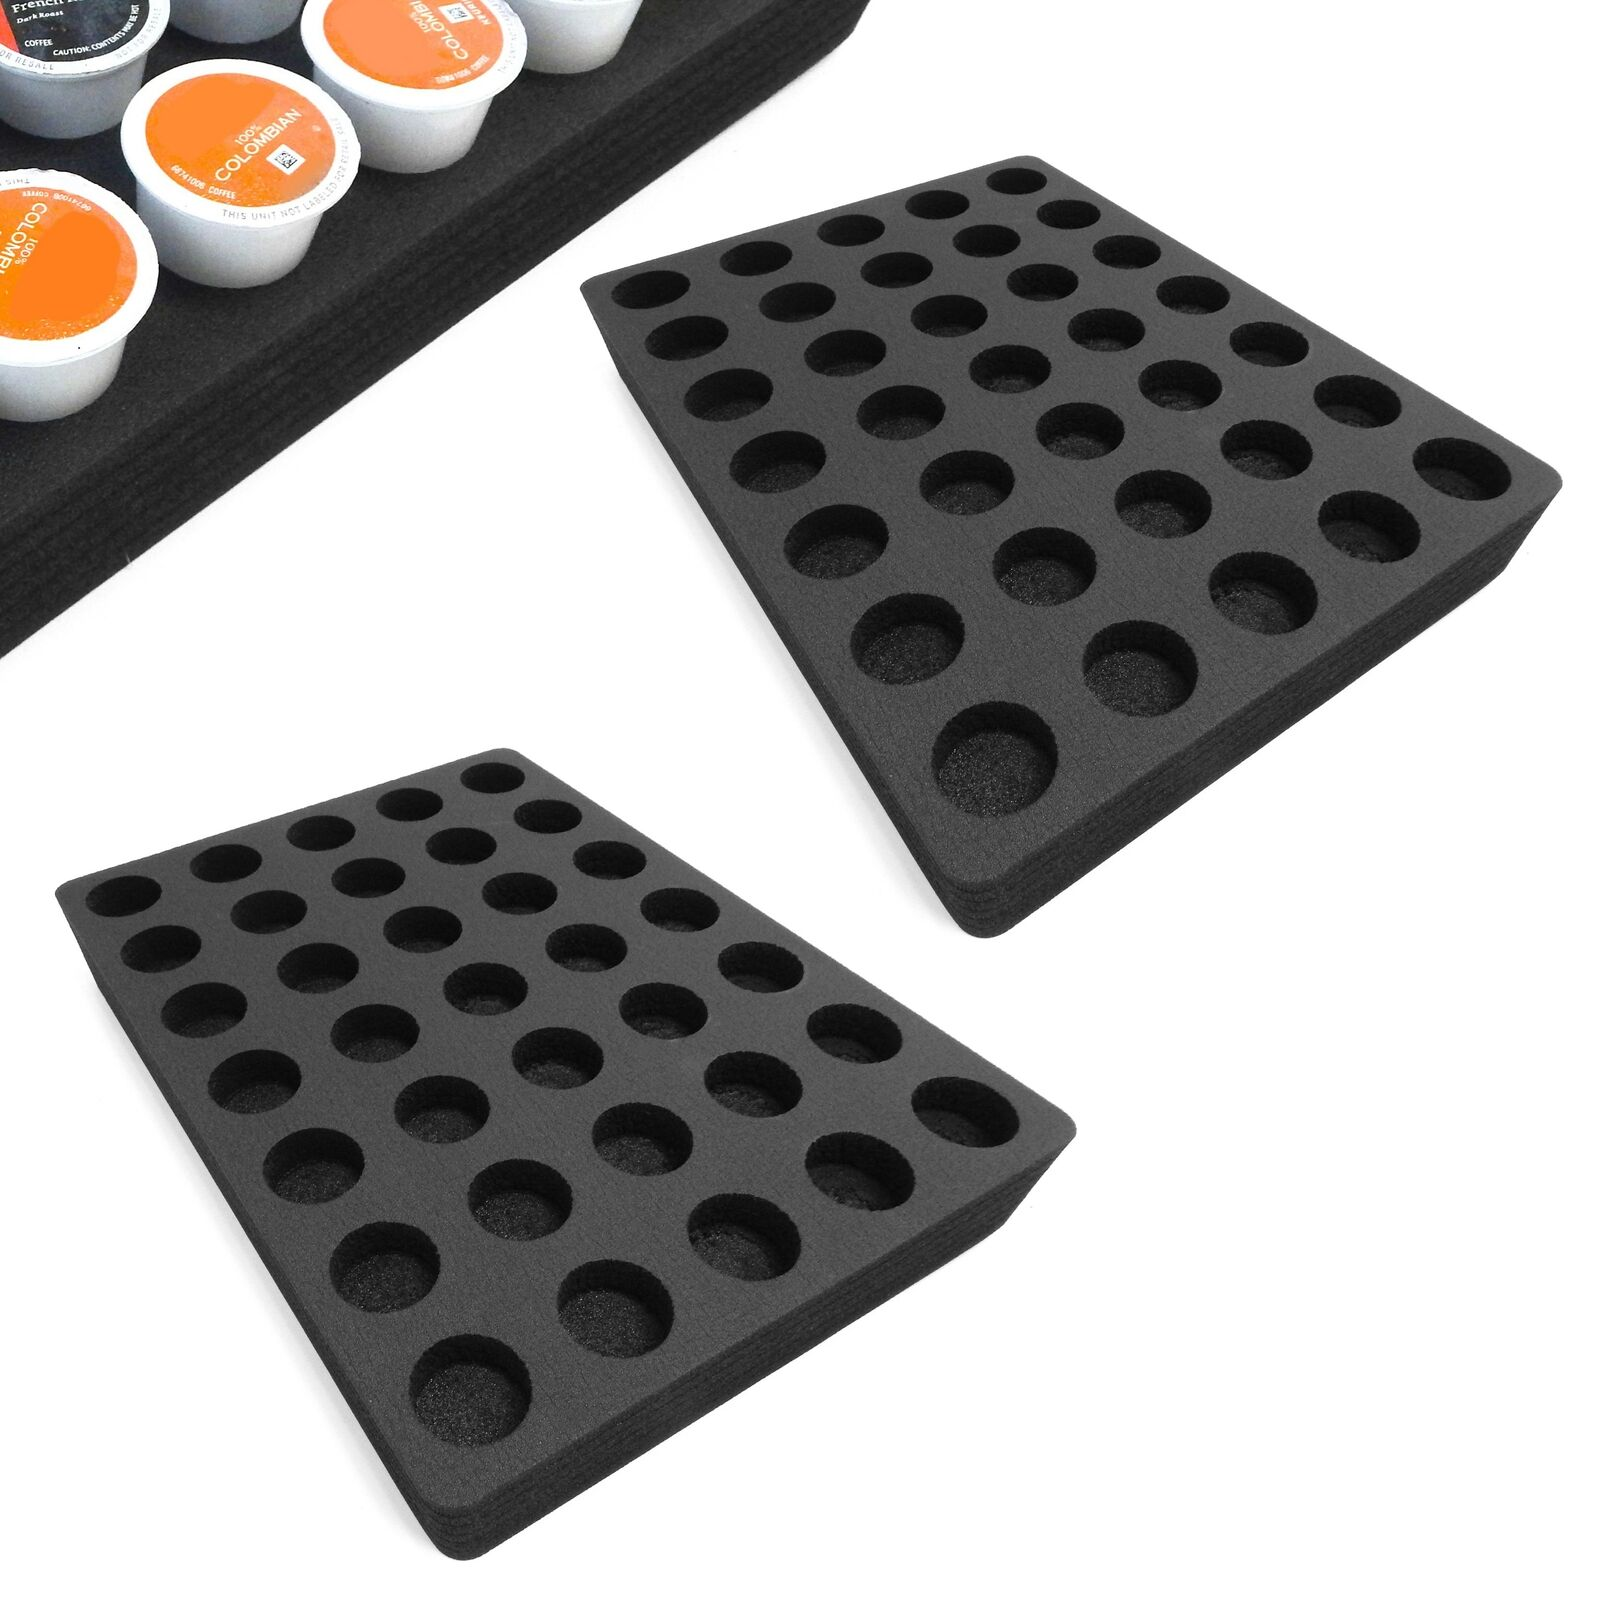 2 Coffee Pod Organizer Drawer Insert Fits Keurig K-Cup 35 Slot 11.9  x 15.9